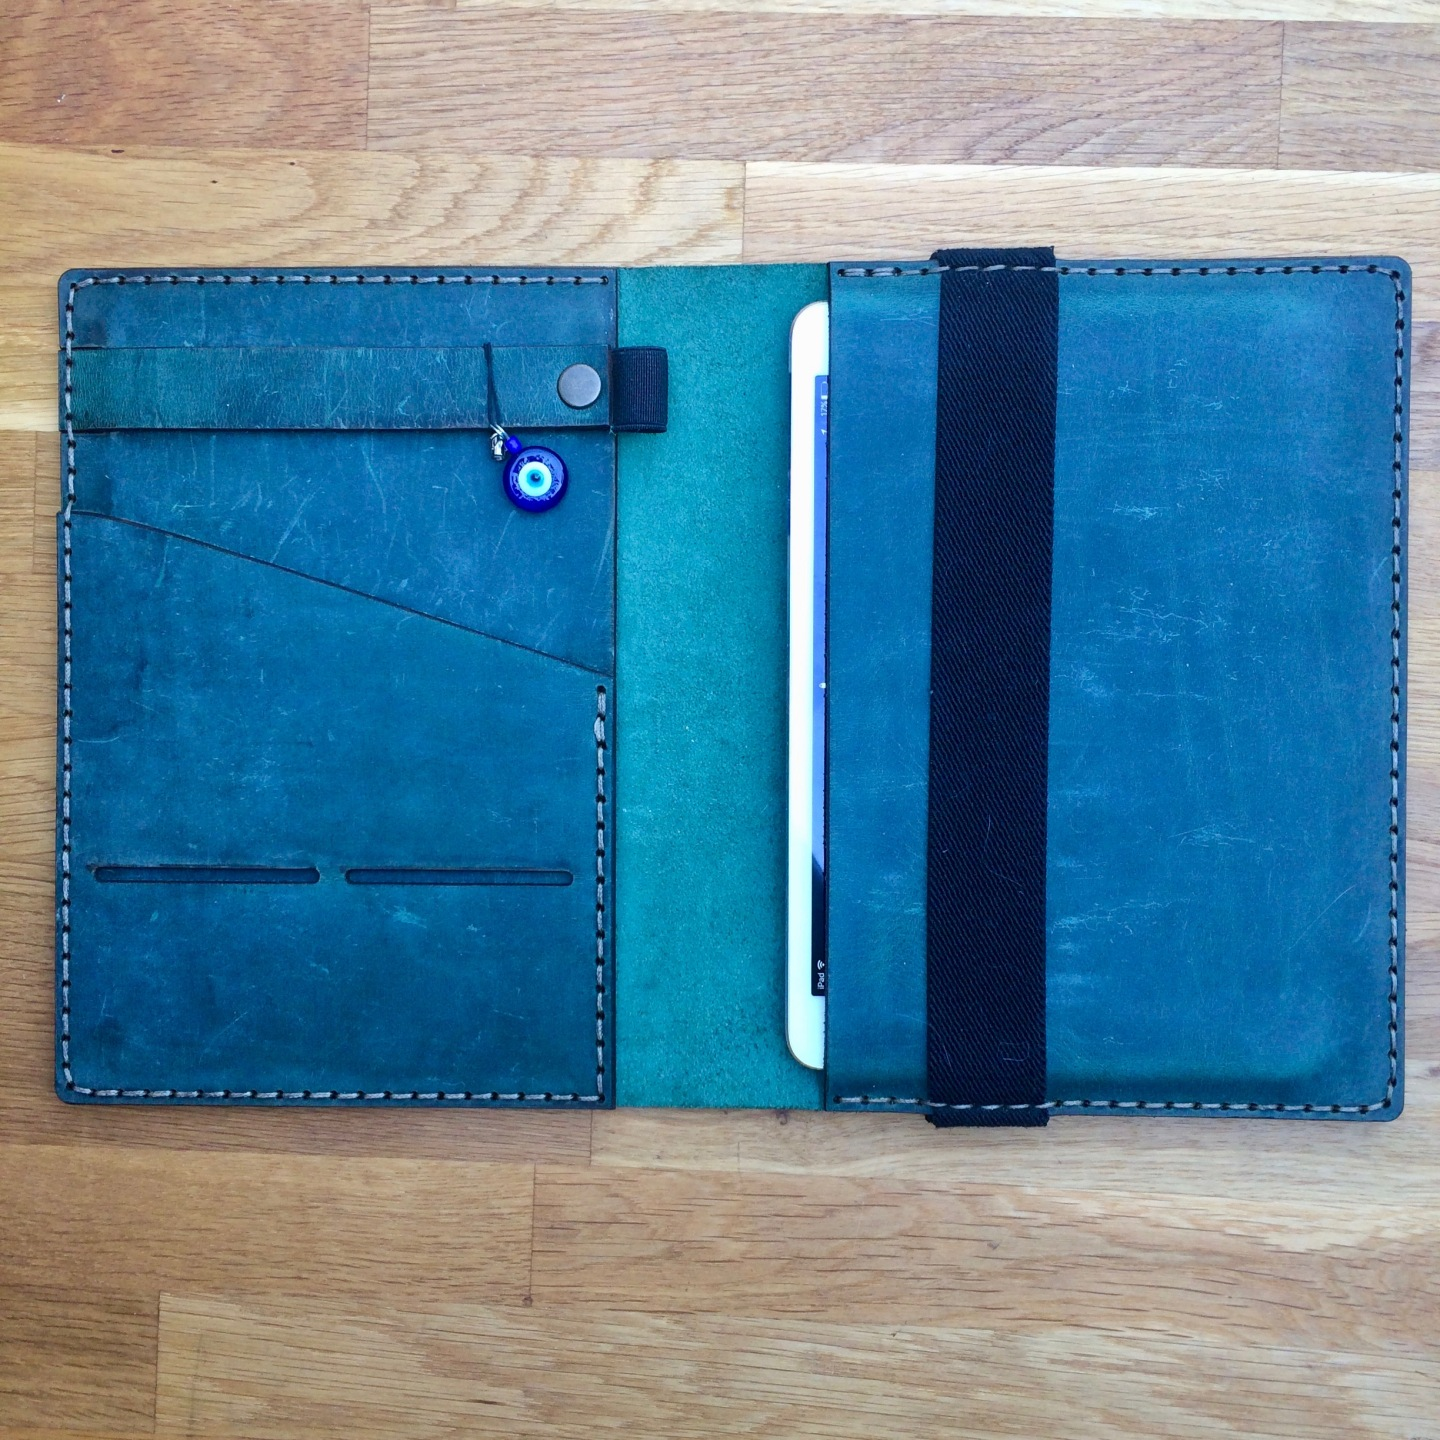 Cover with iPad